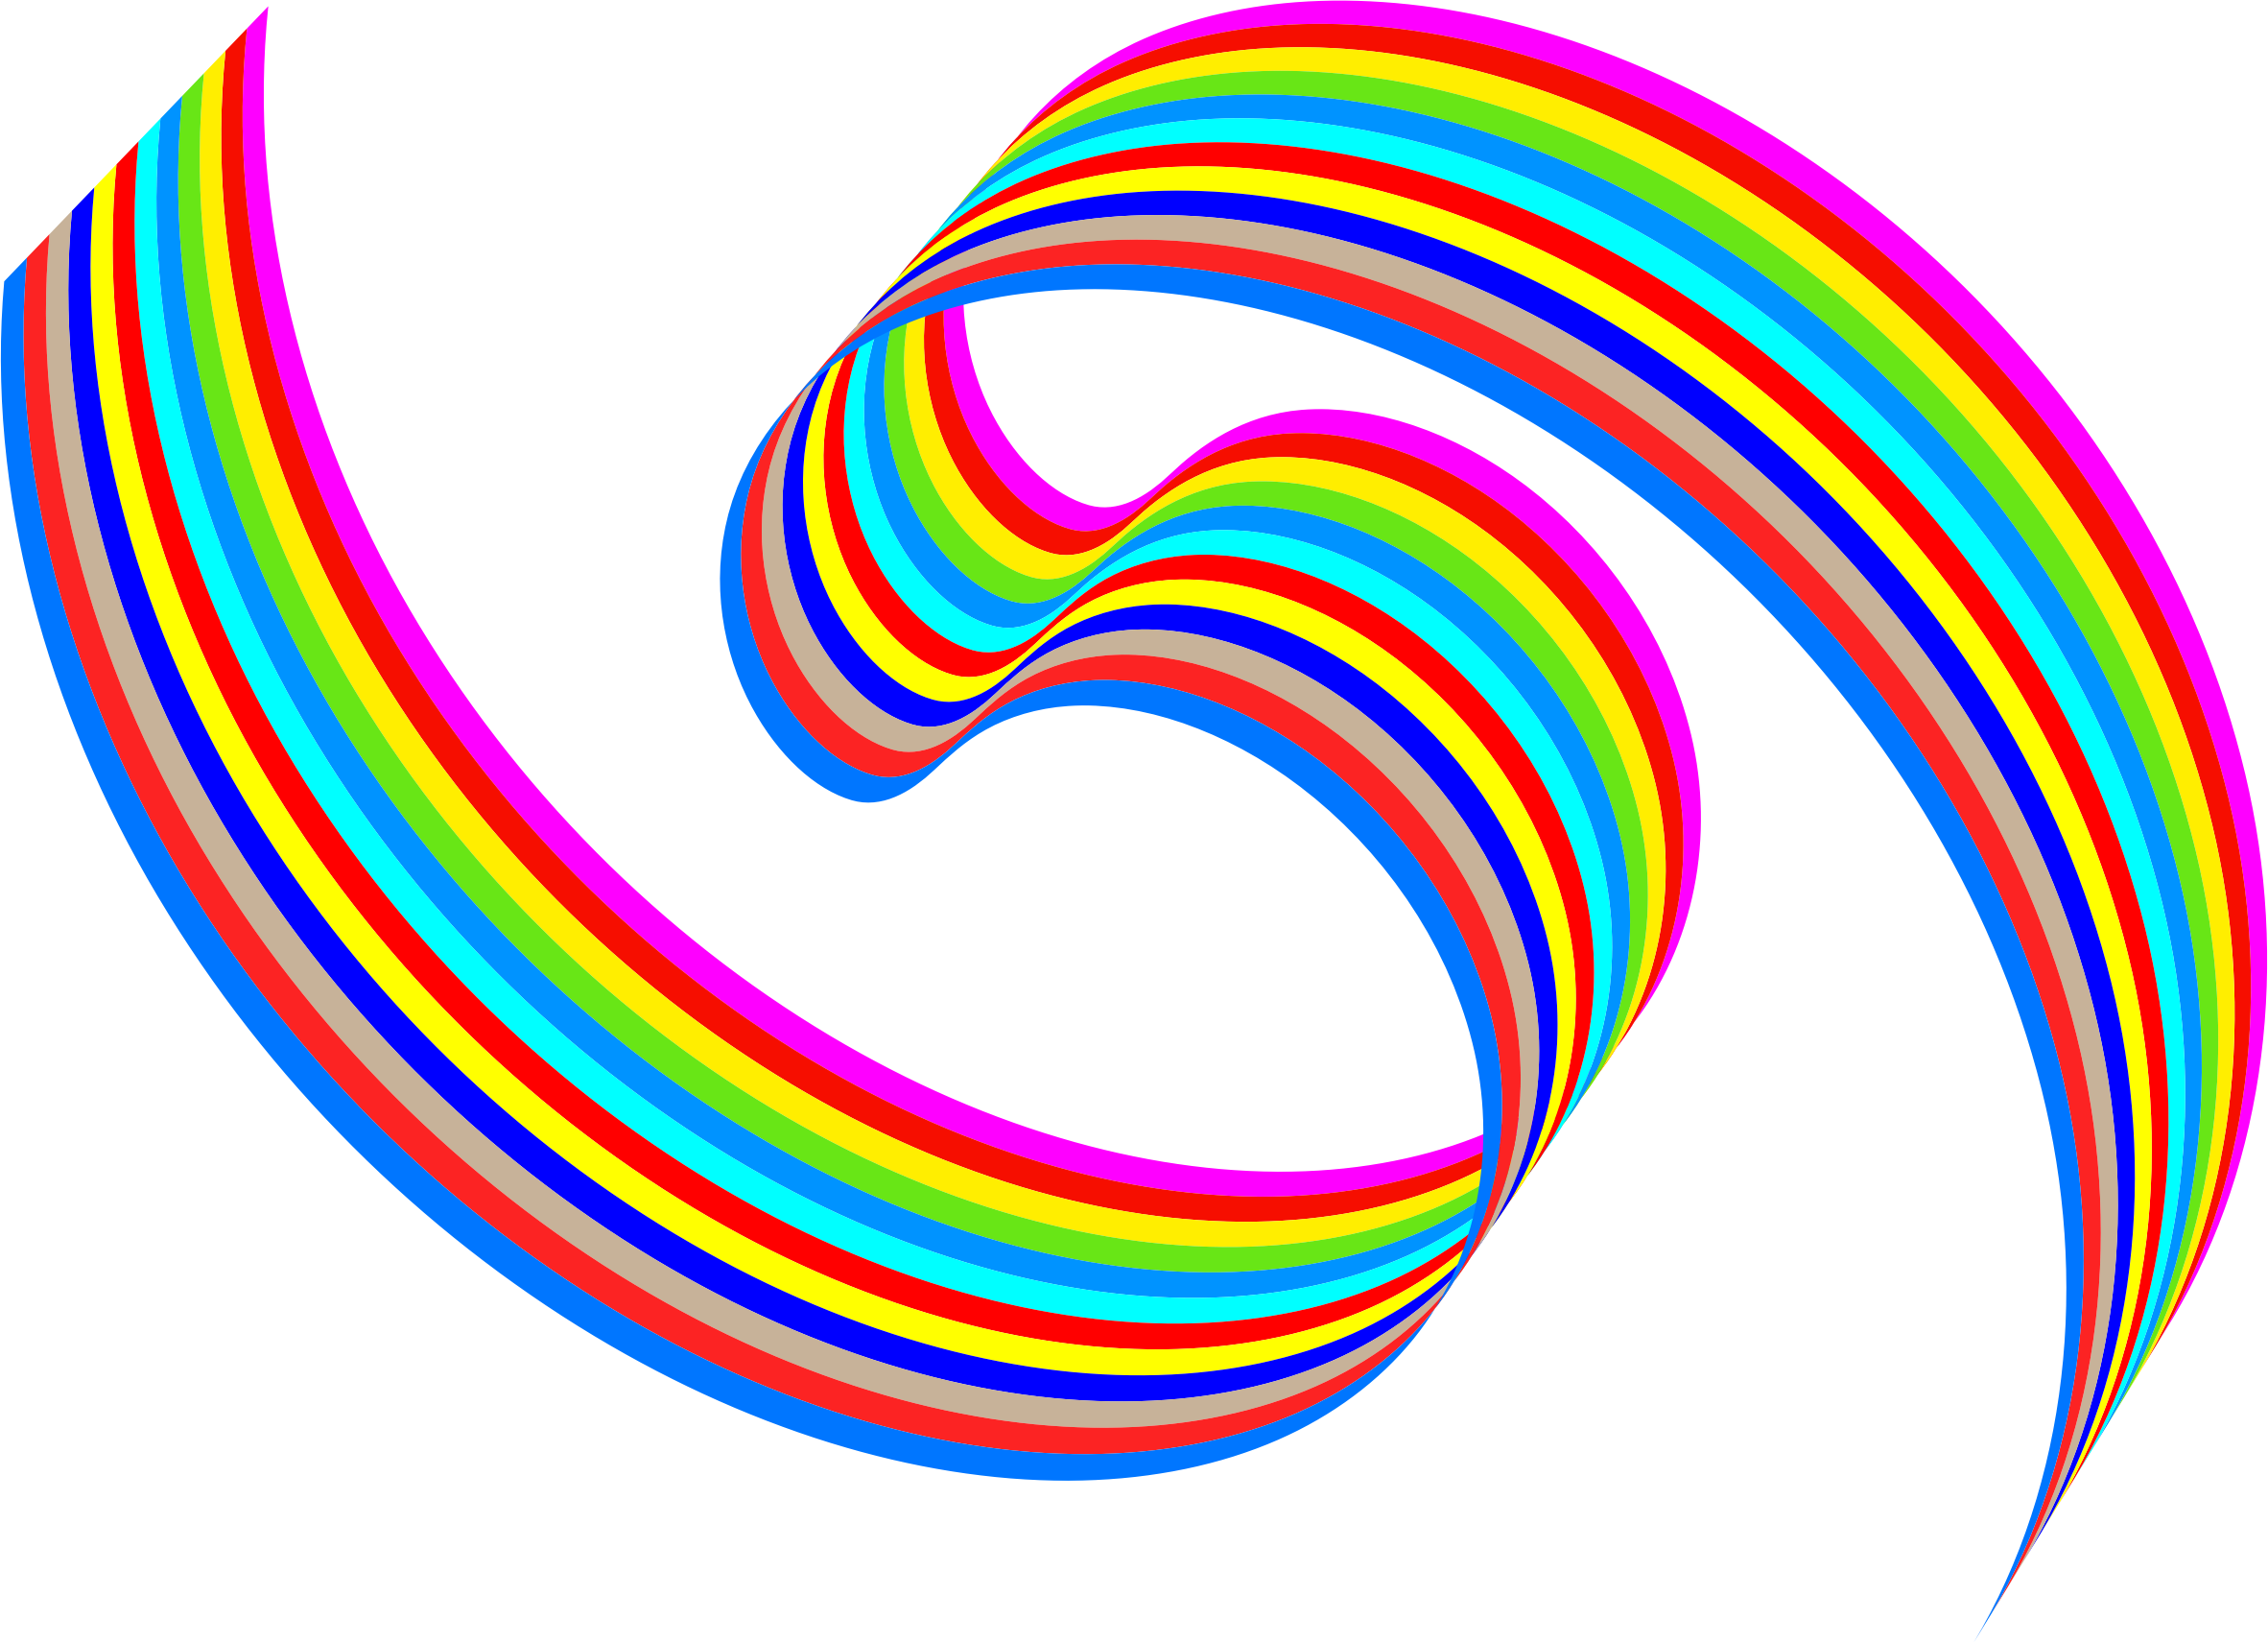 Wavy Rainbow Ribbon by GDJ